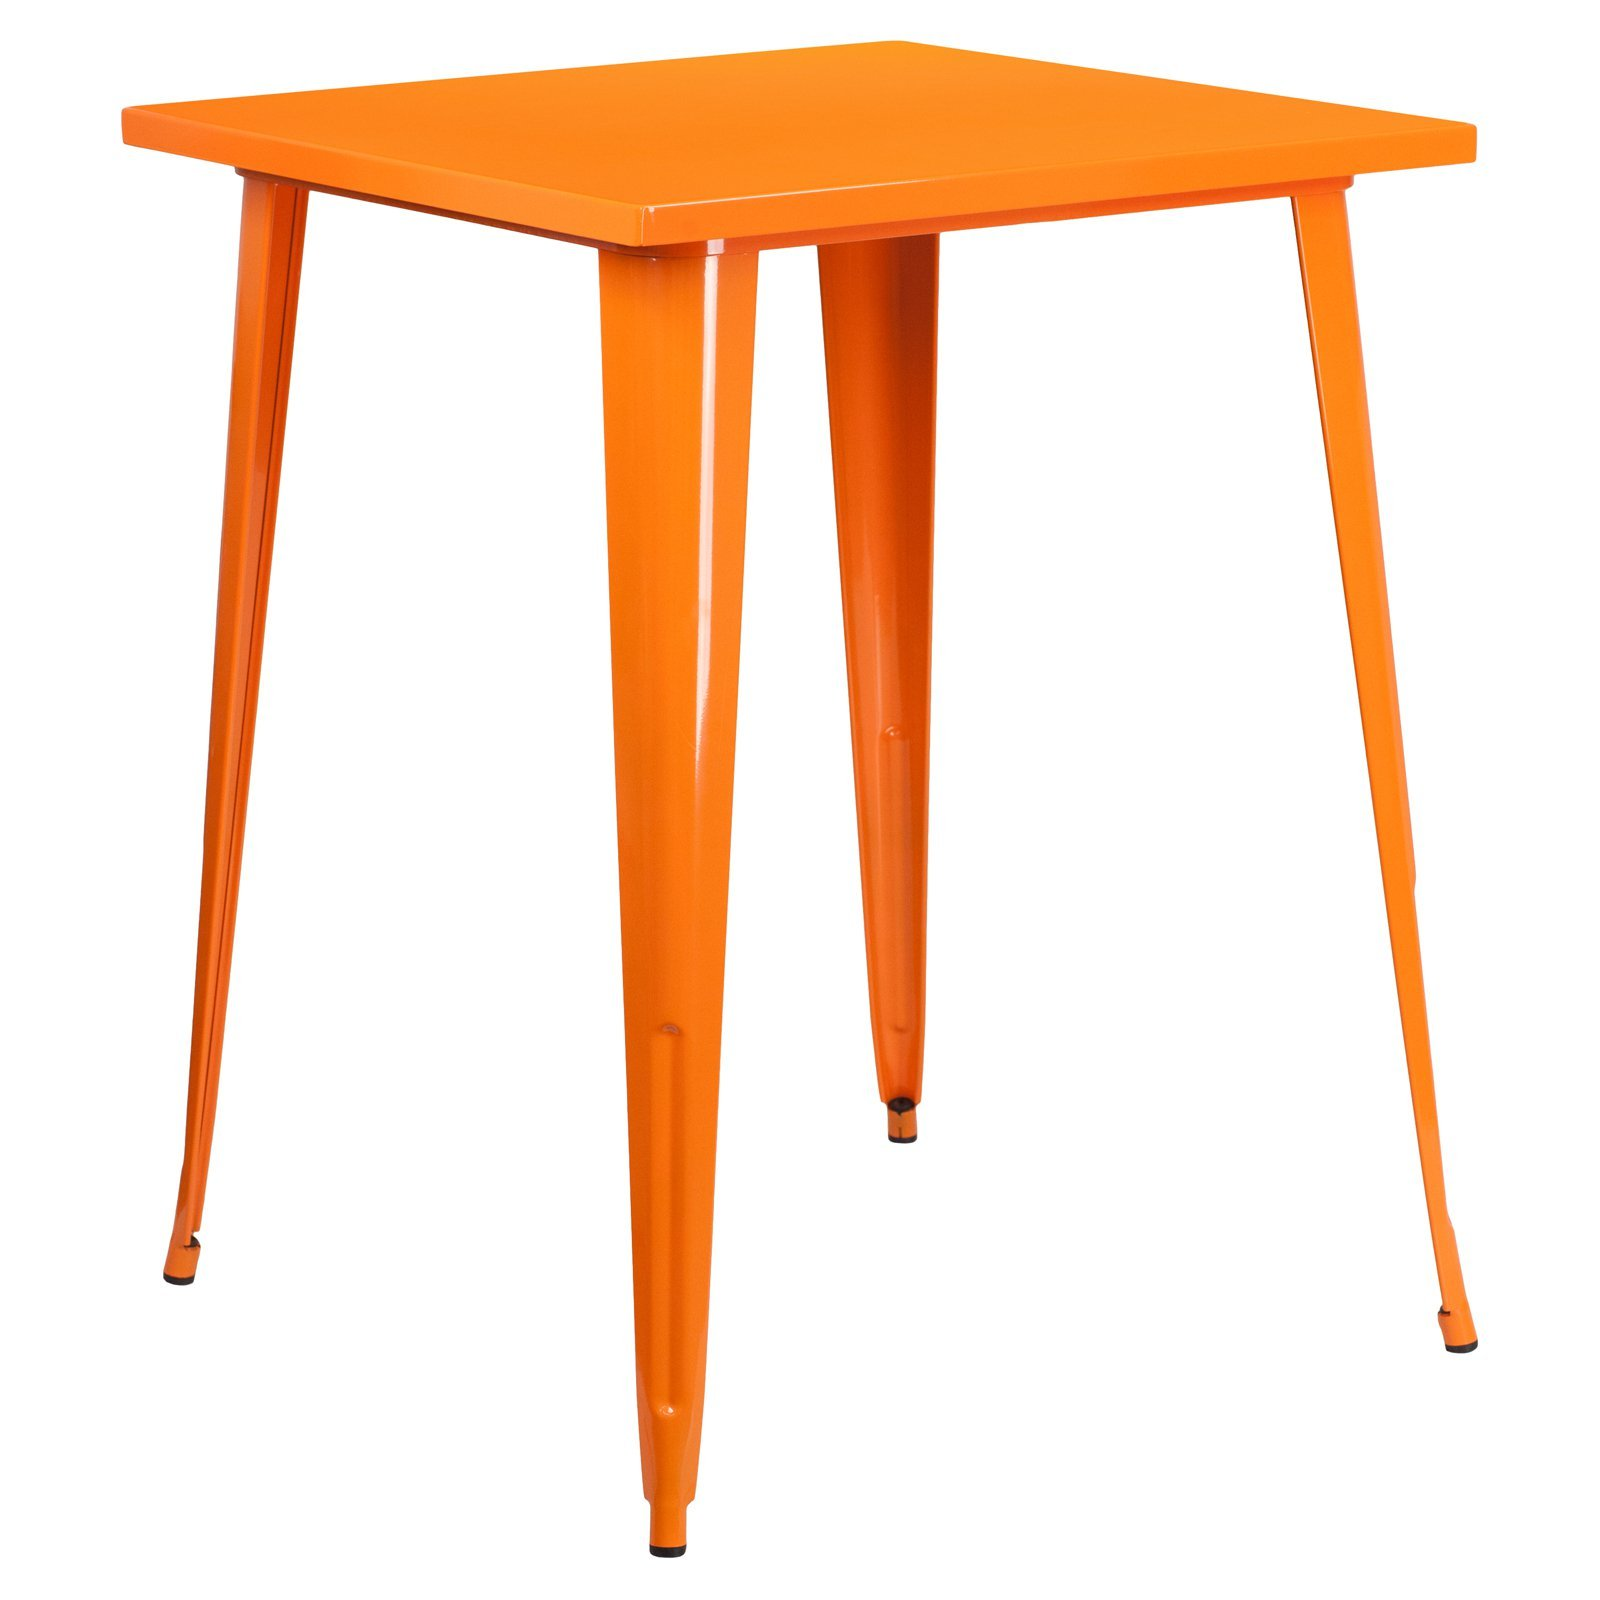 Basic 31.5'' Square Metal Indoor/Outdoor Bar Height Table with Protective Rubber Feet to Prevent Floor Damage, Thick Brace Underneath for Added Stability, Orange + Expert Home Guide by Love US